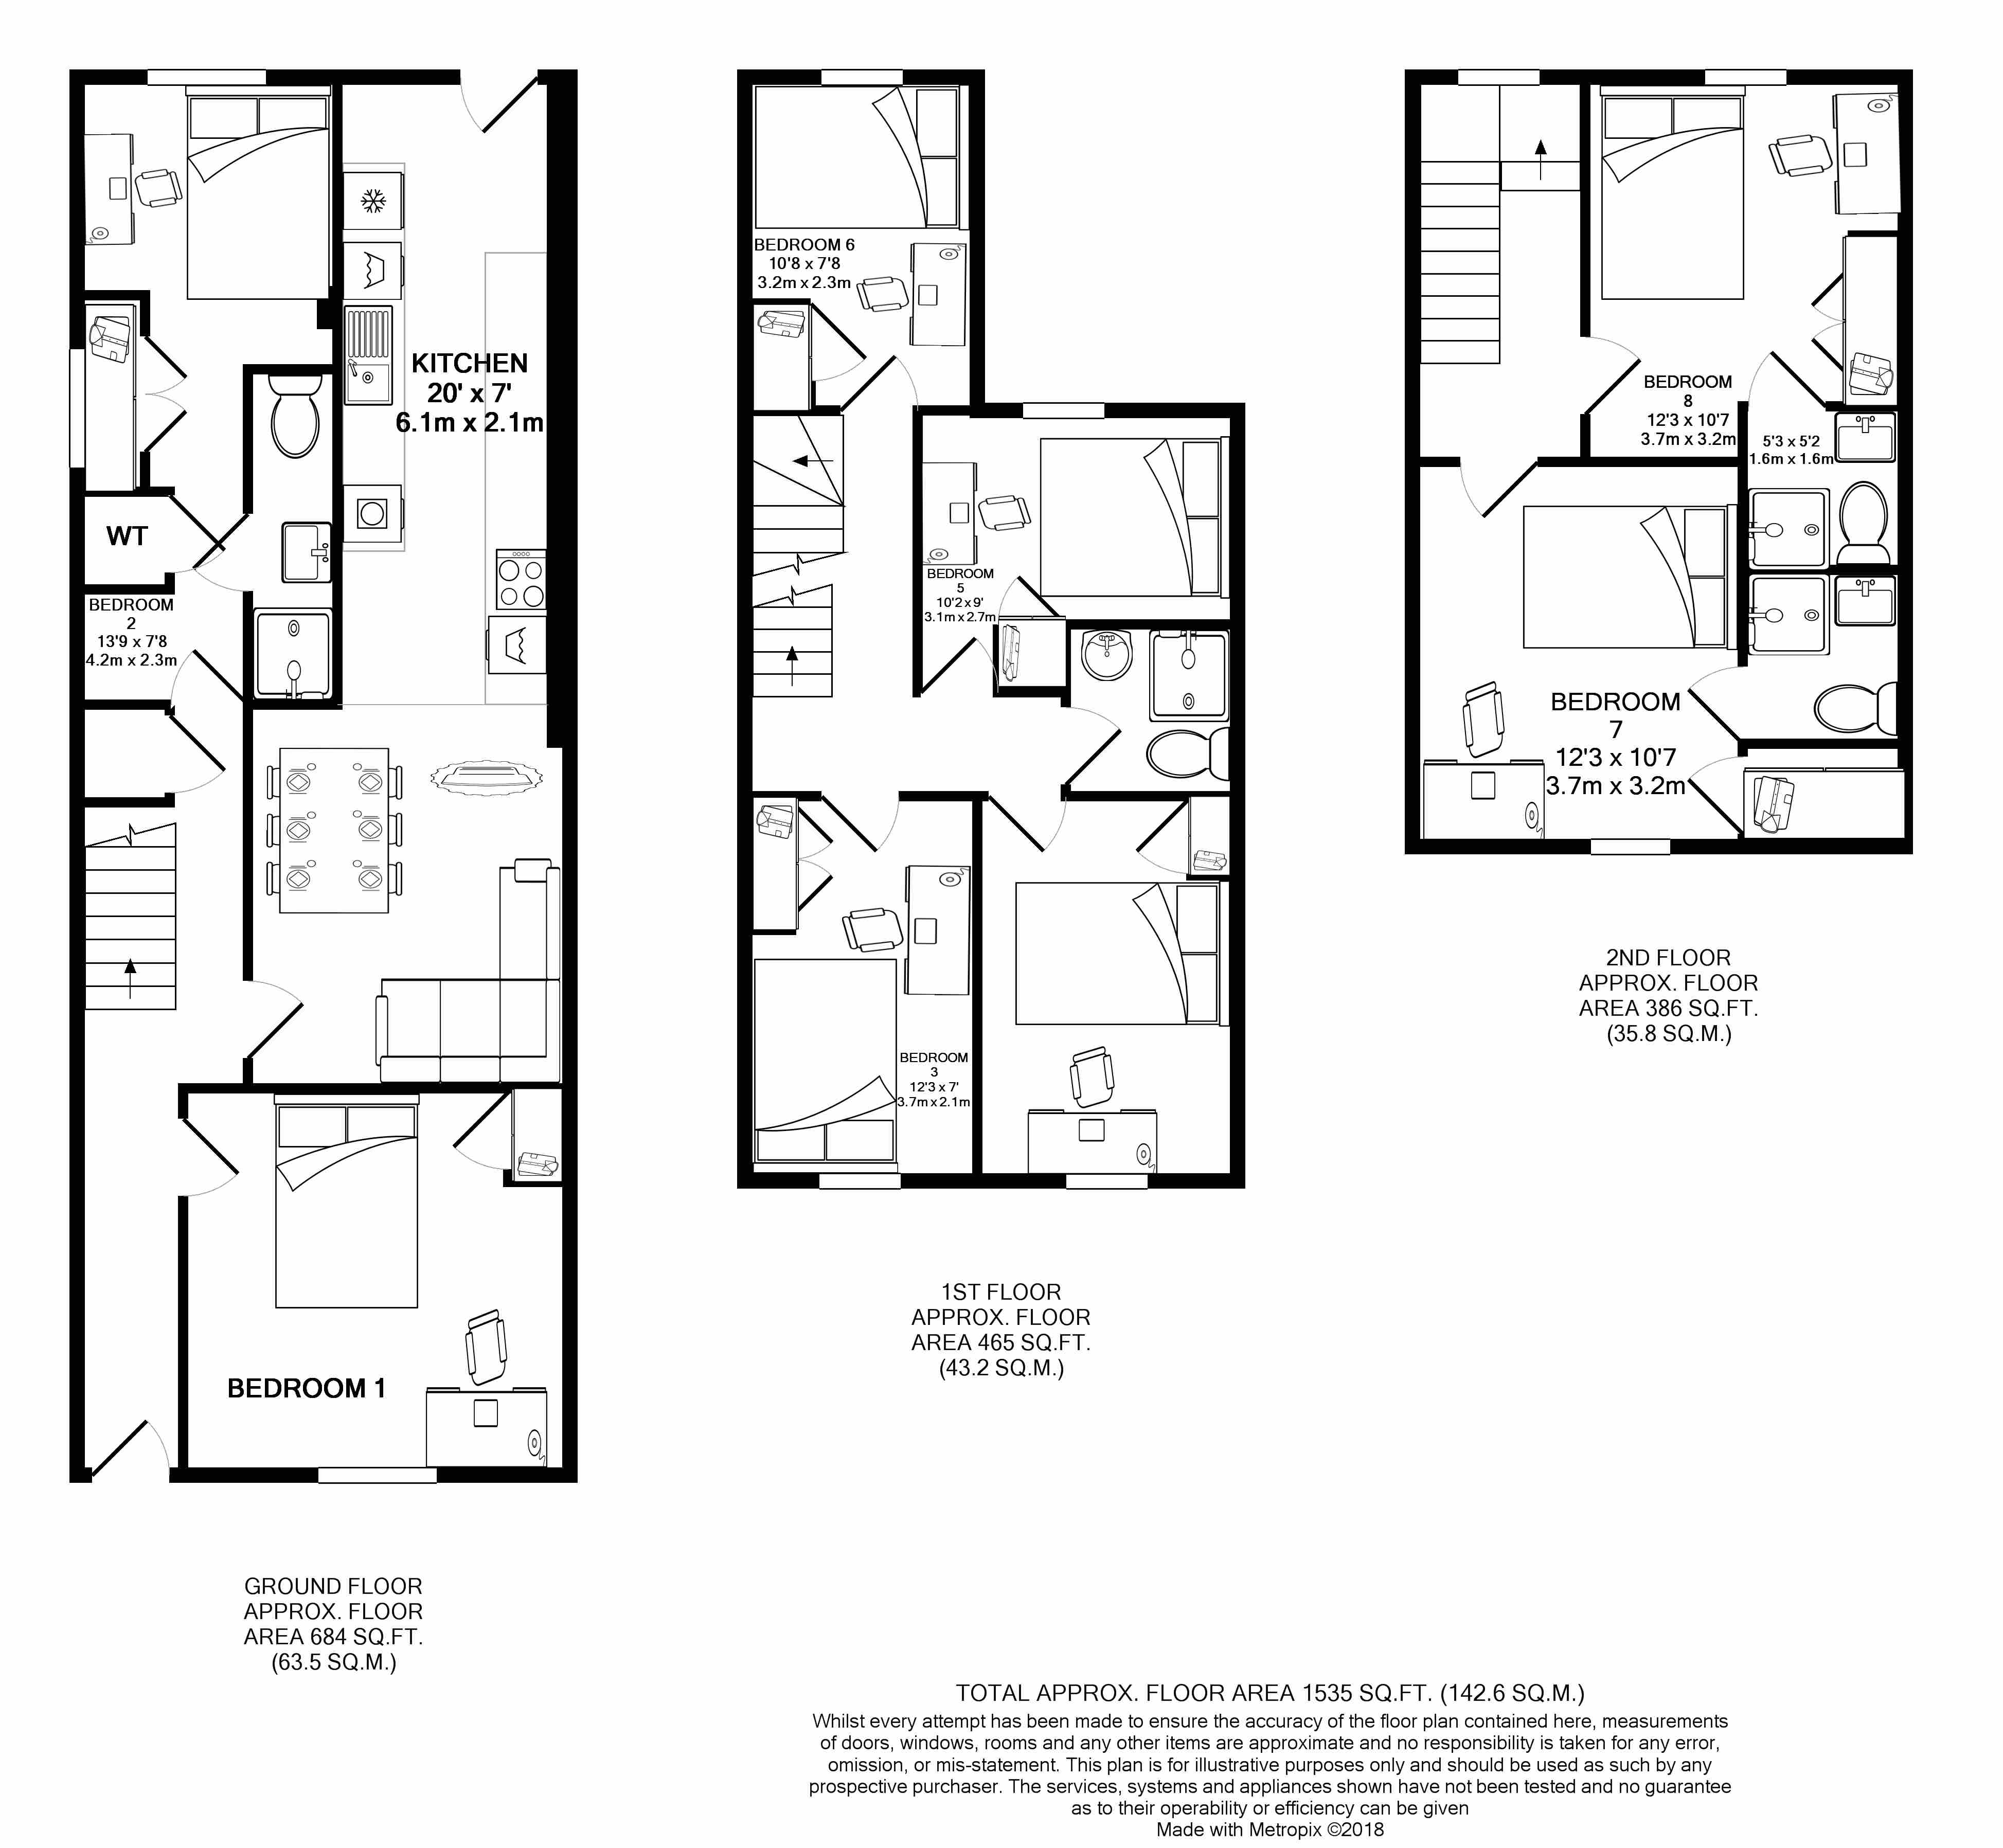 39 Springfield Road - floorplans